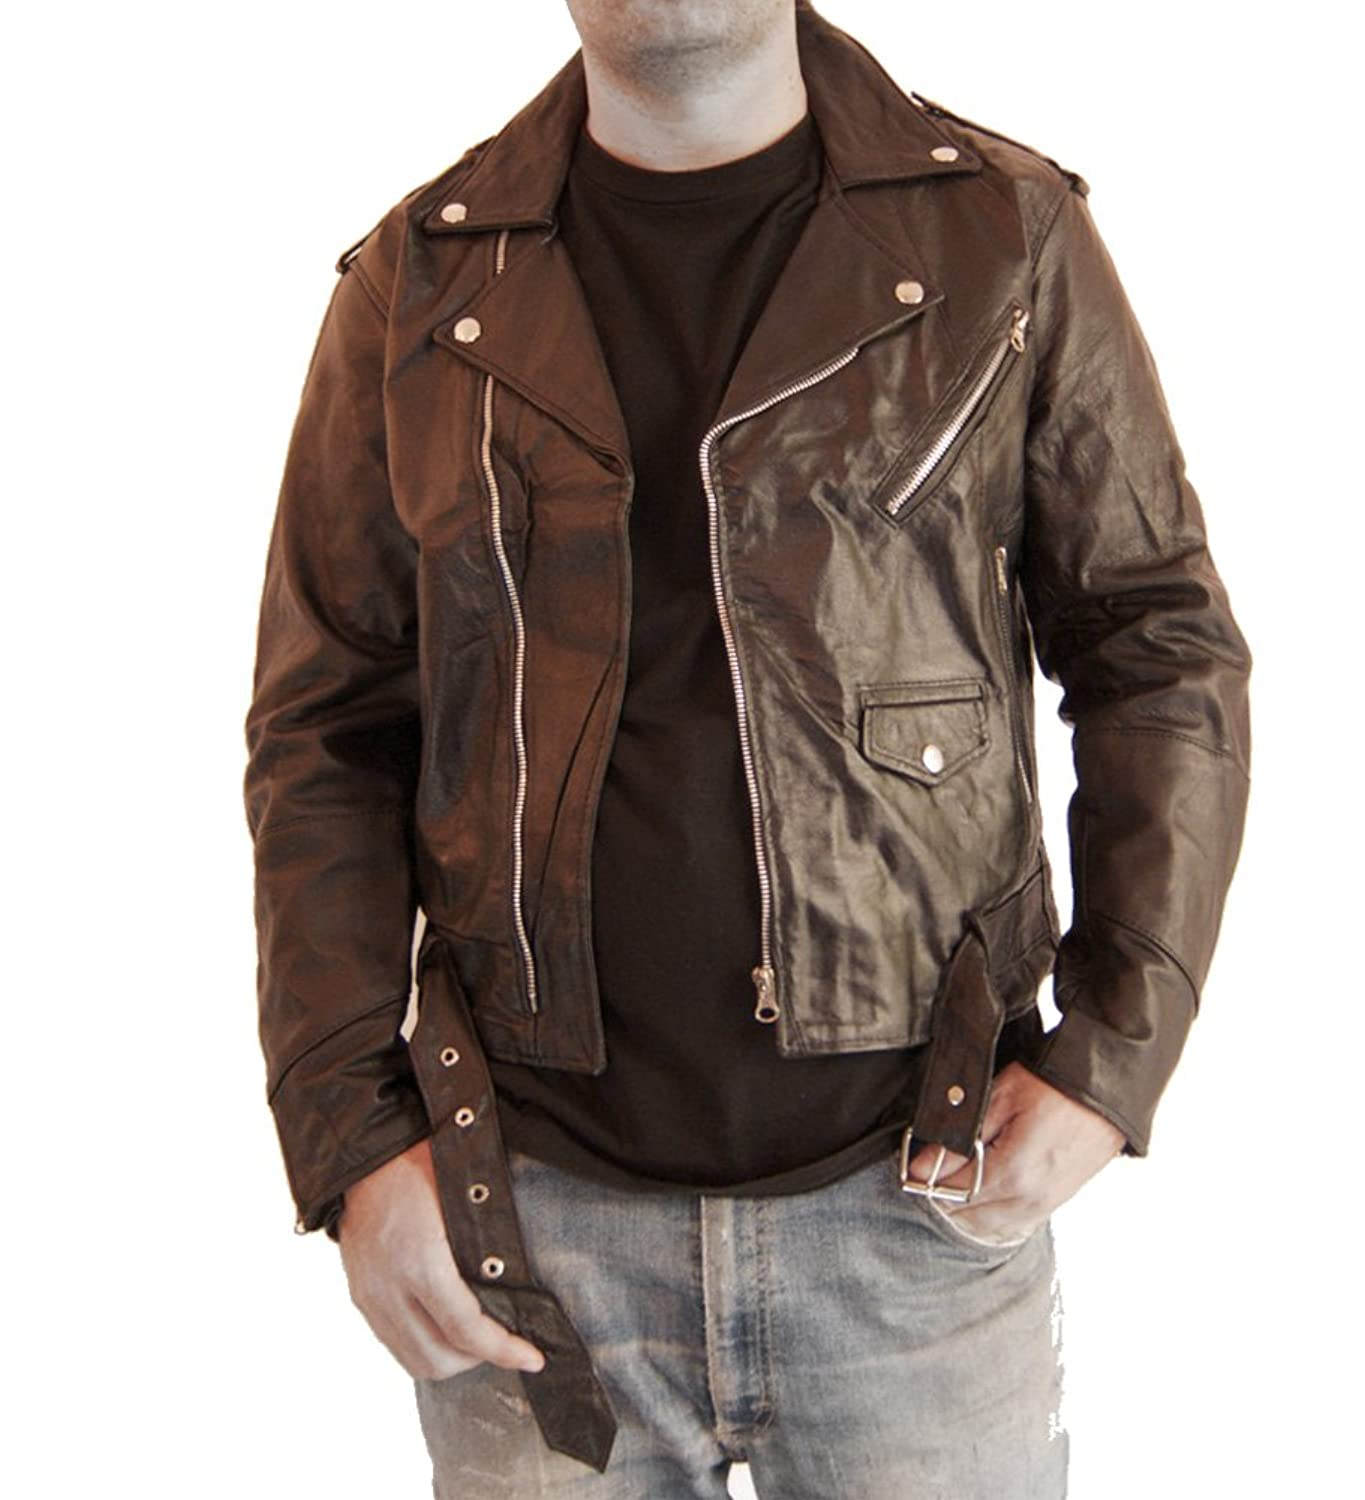 Bikers Zone Leather Jacket Review Retro Leather Biker Jacket